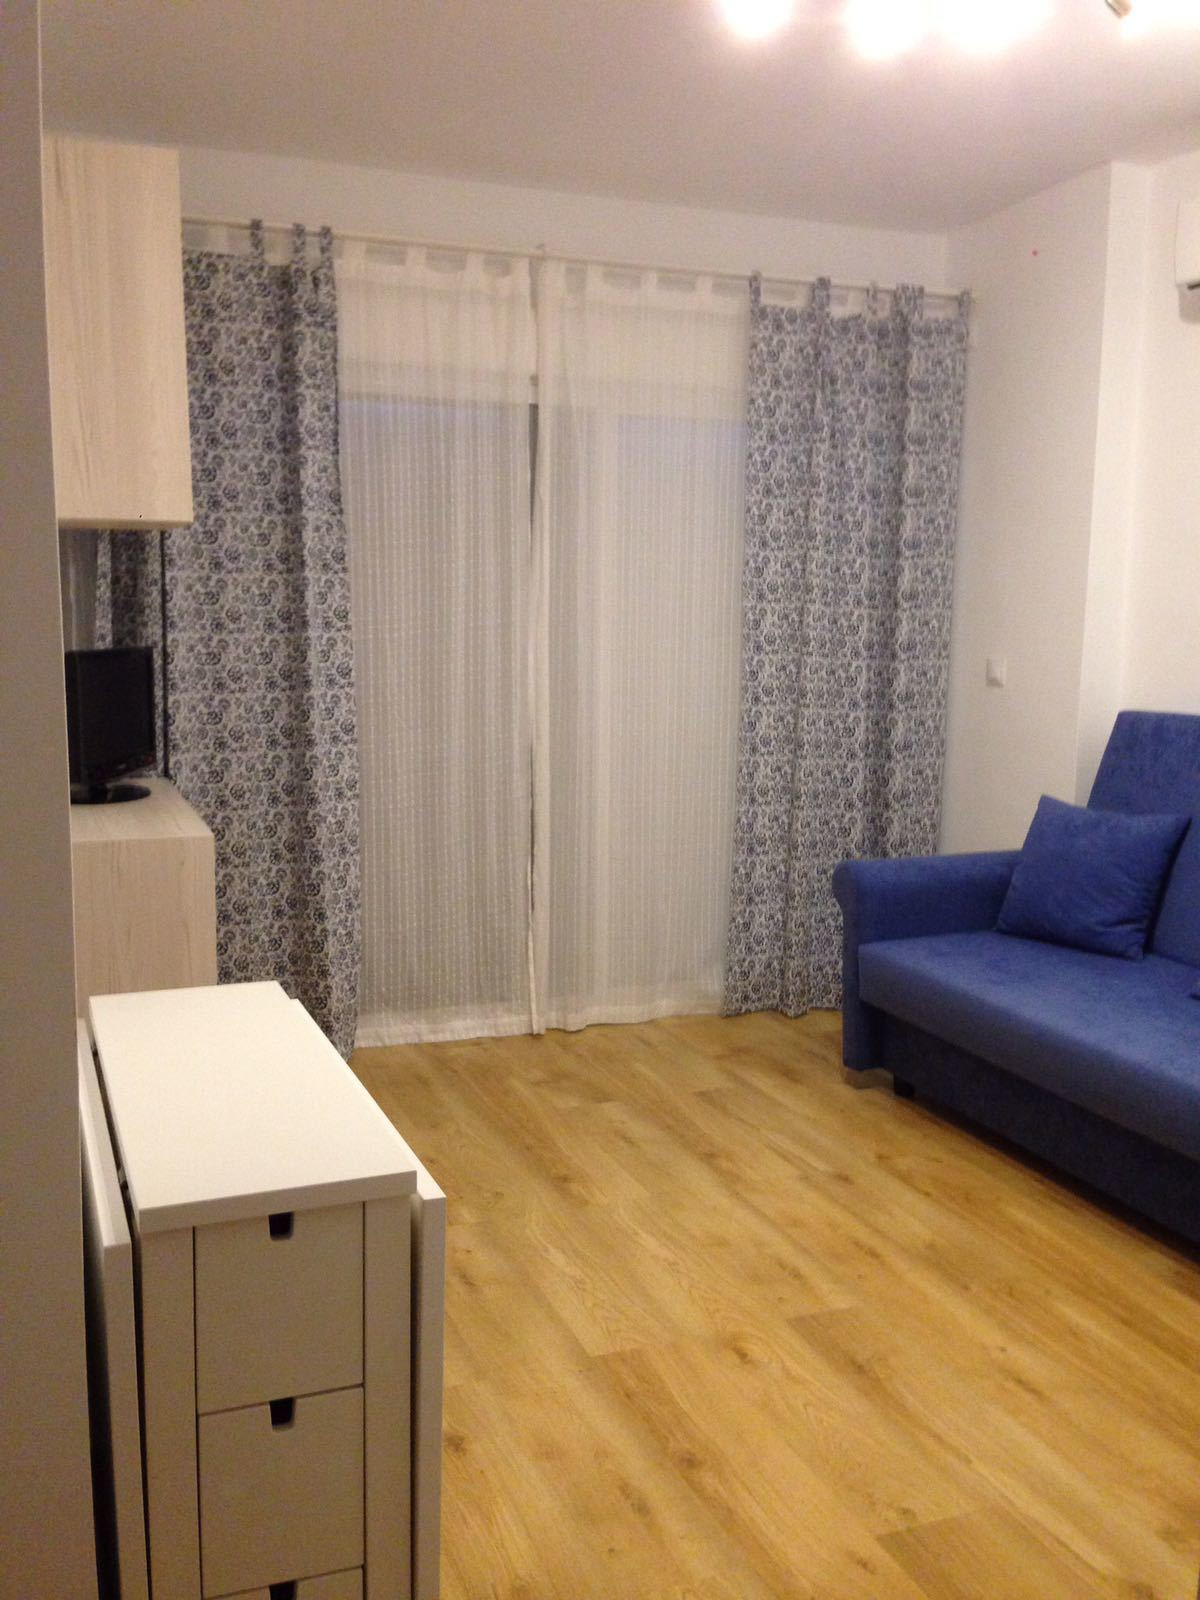 Fantastic apartment completely renovated with mountain views. It consists of a bedroom, living room-,Spain